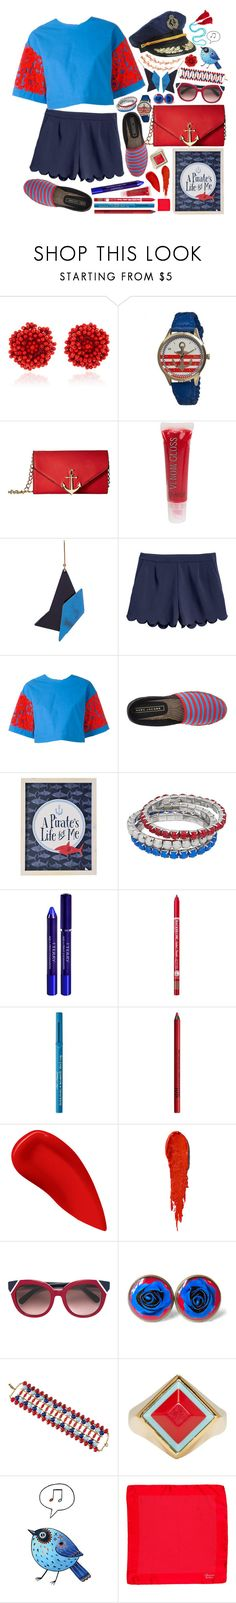 """sailor party🍷"" by issuri ❤ liked on Polyvore featuring Bibi Marini, Boum, Circus by Sam Edelman, DuWop, STELLA McCARTNEY, MSGM, Marc Jacobs, Pillowfort, By Terry and Charlotte Russe"